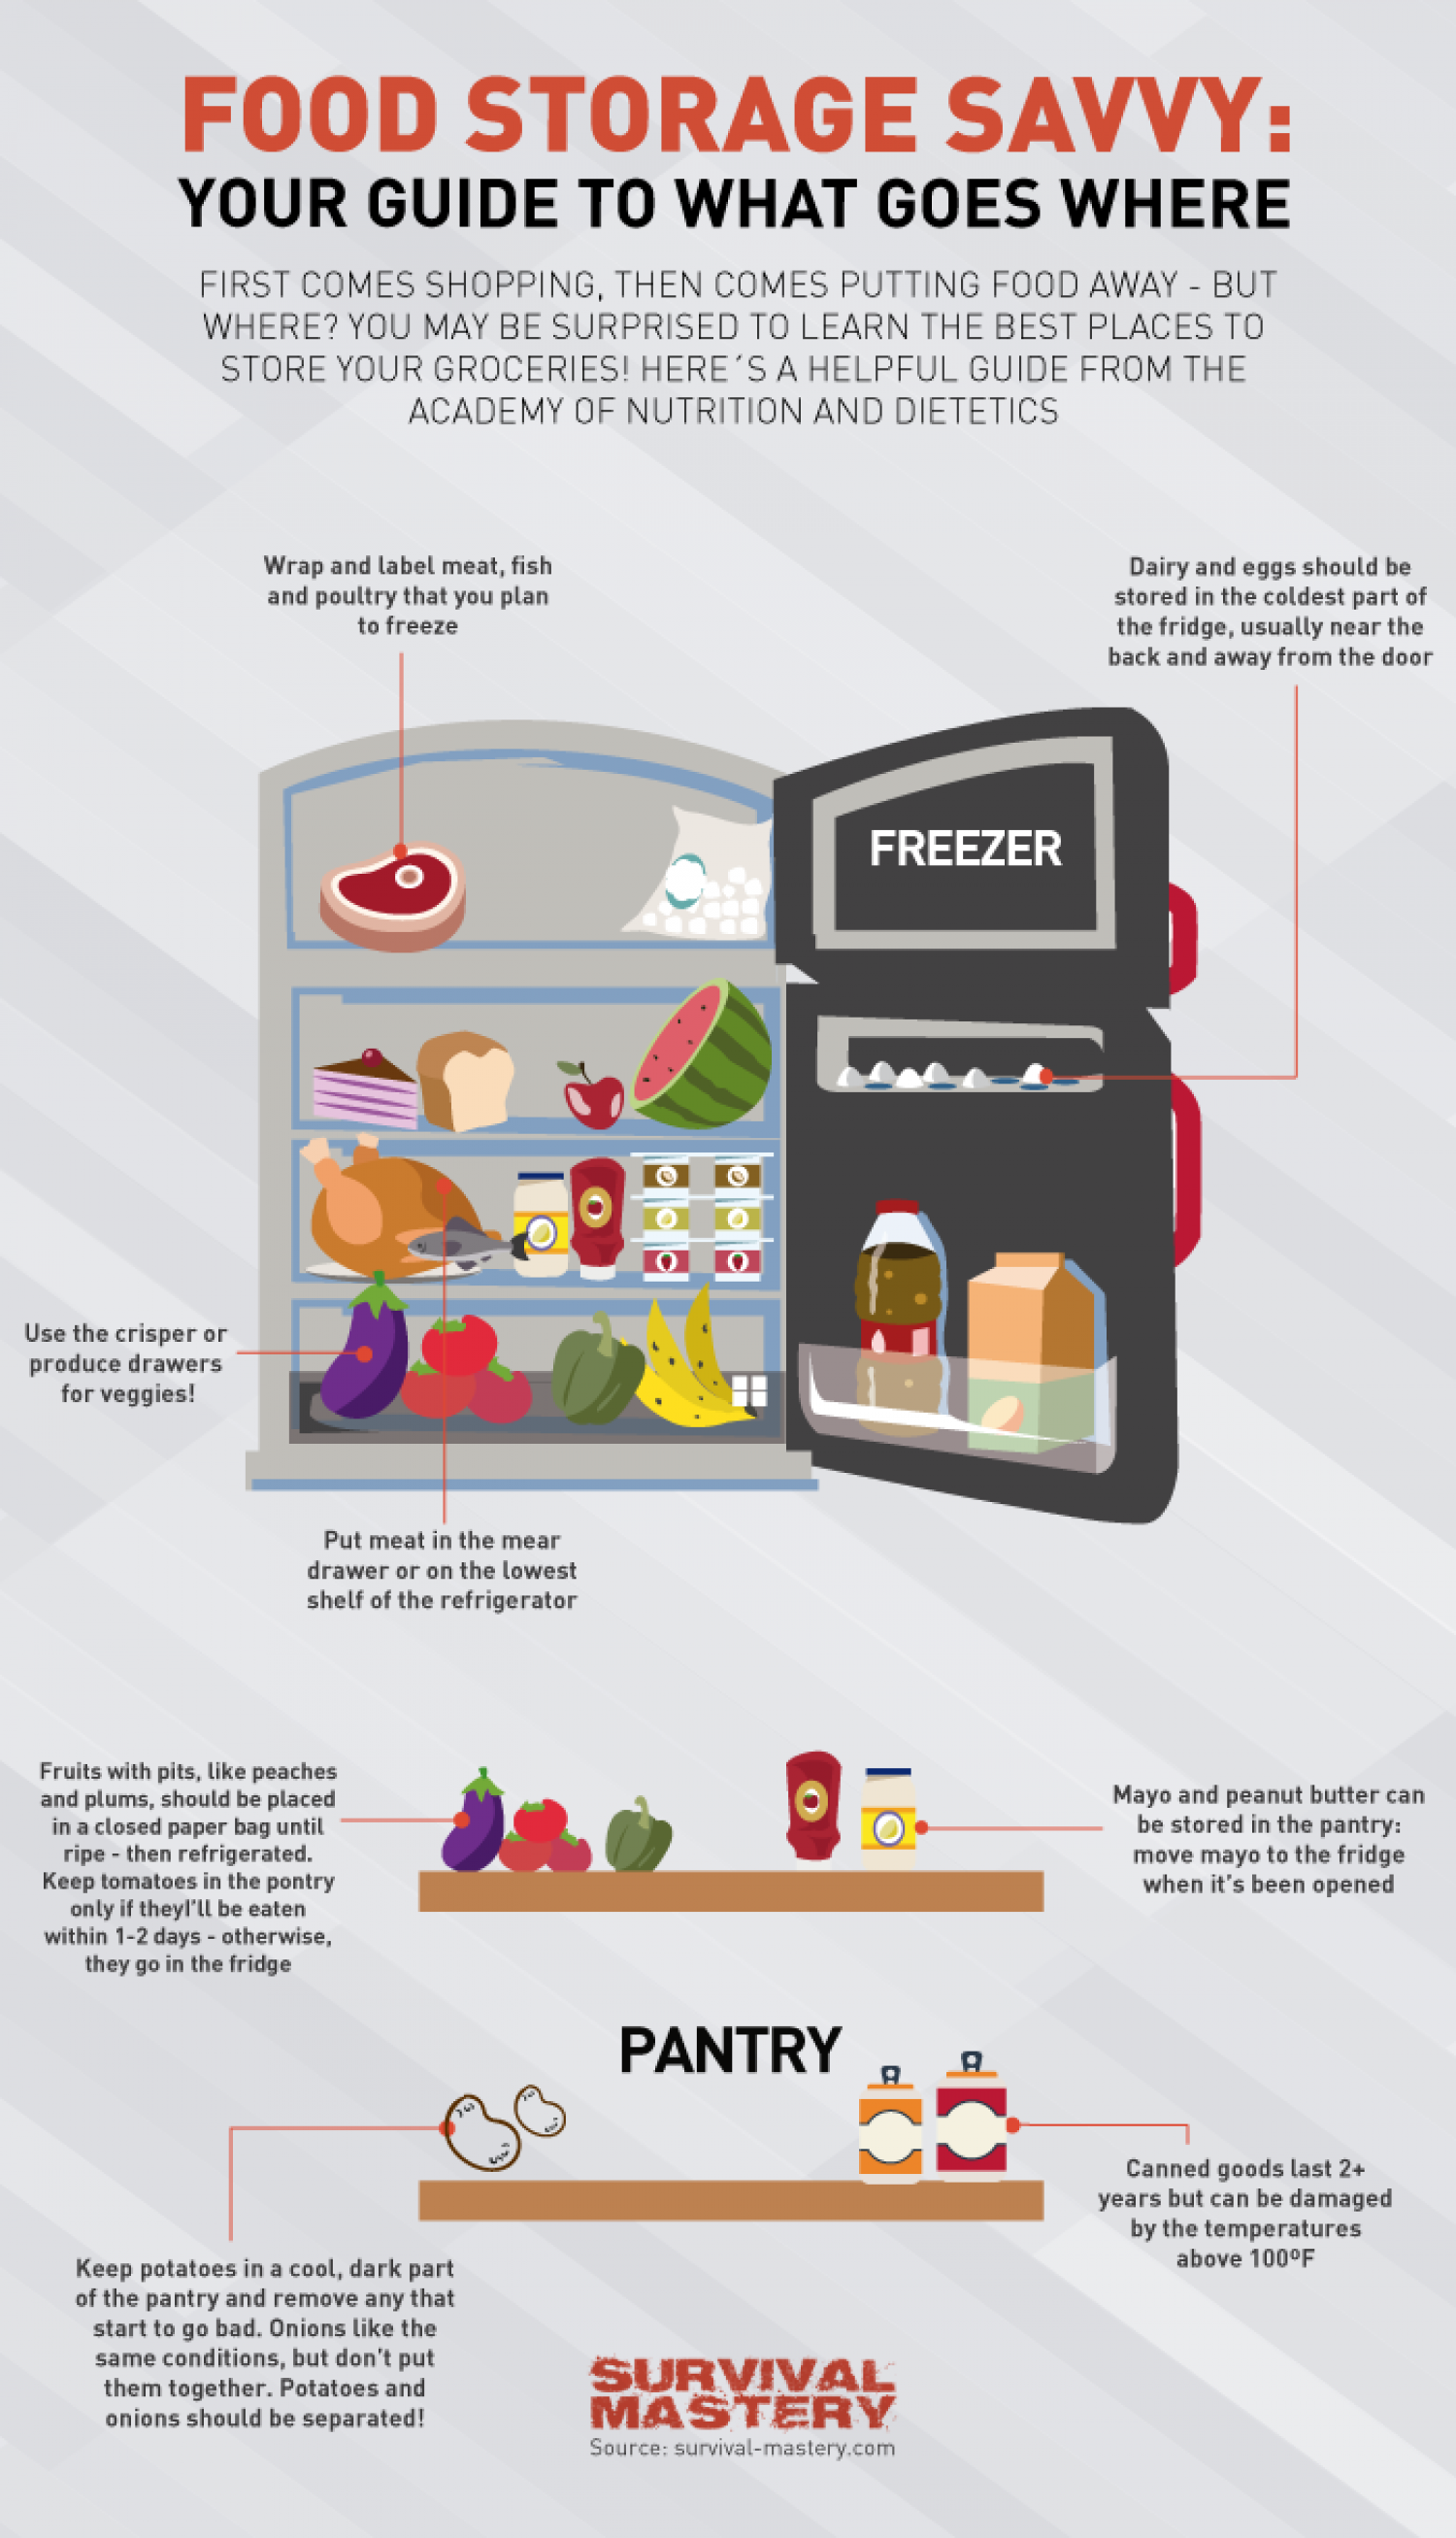 Food Storage Savvy Infographic Infographic